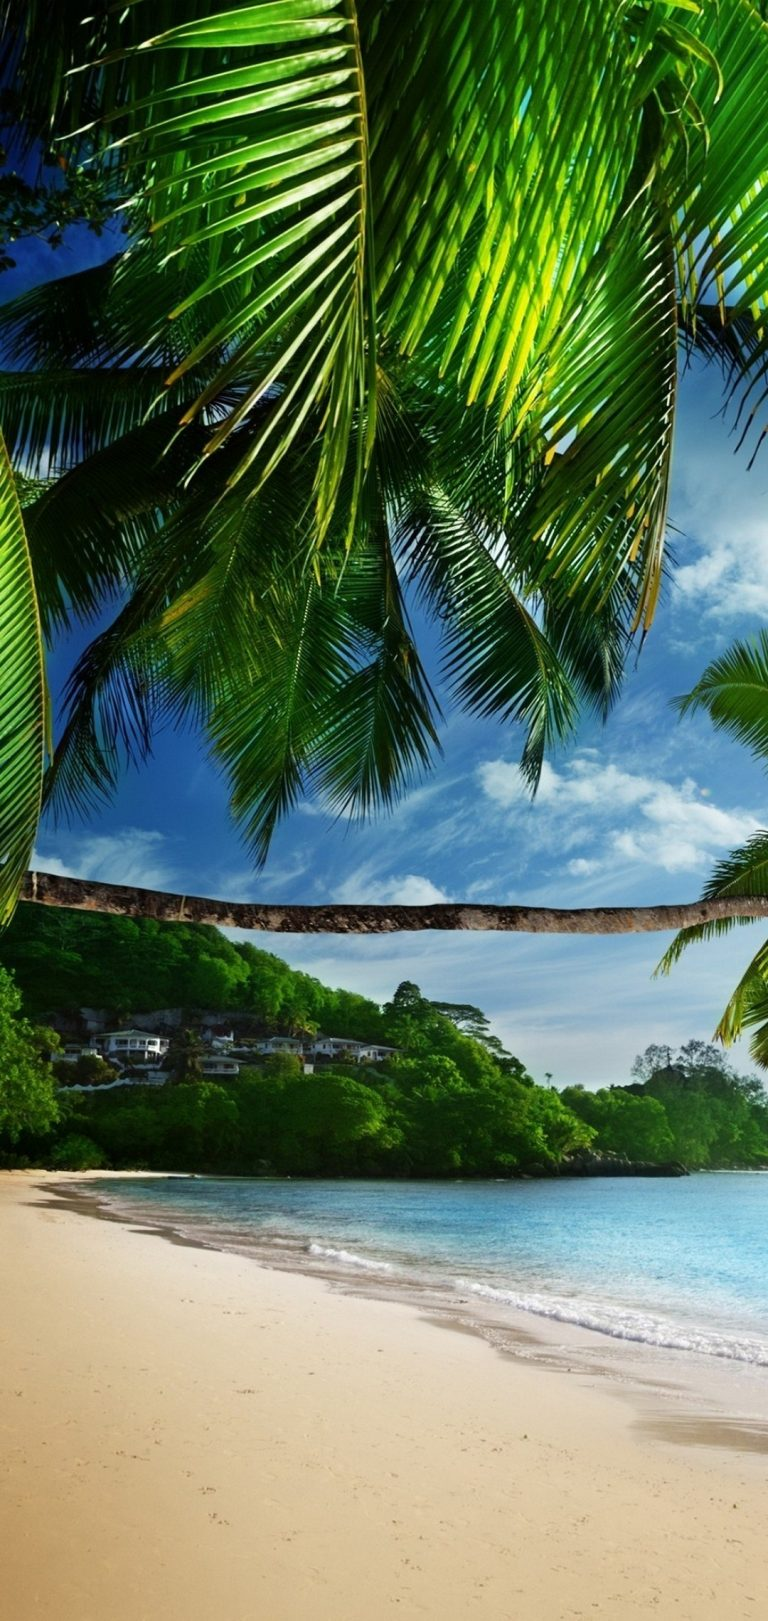 Tropical Beach Wallpaper 1080x2280 768x1621